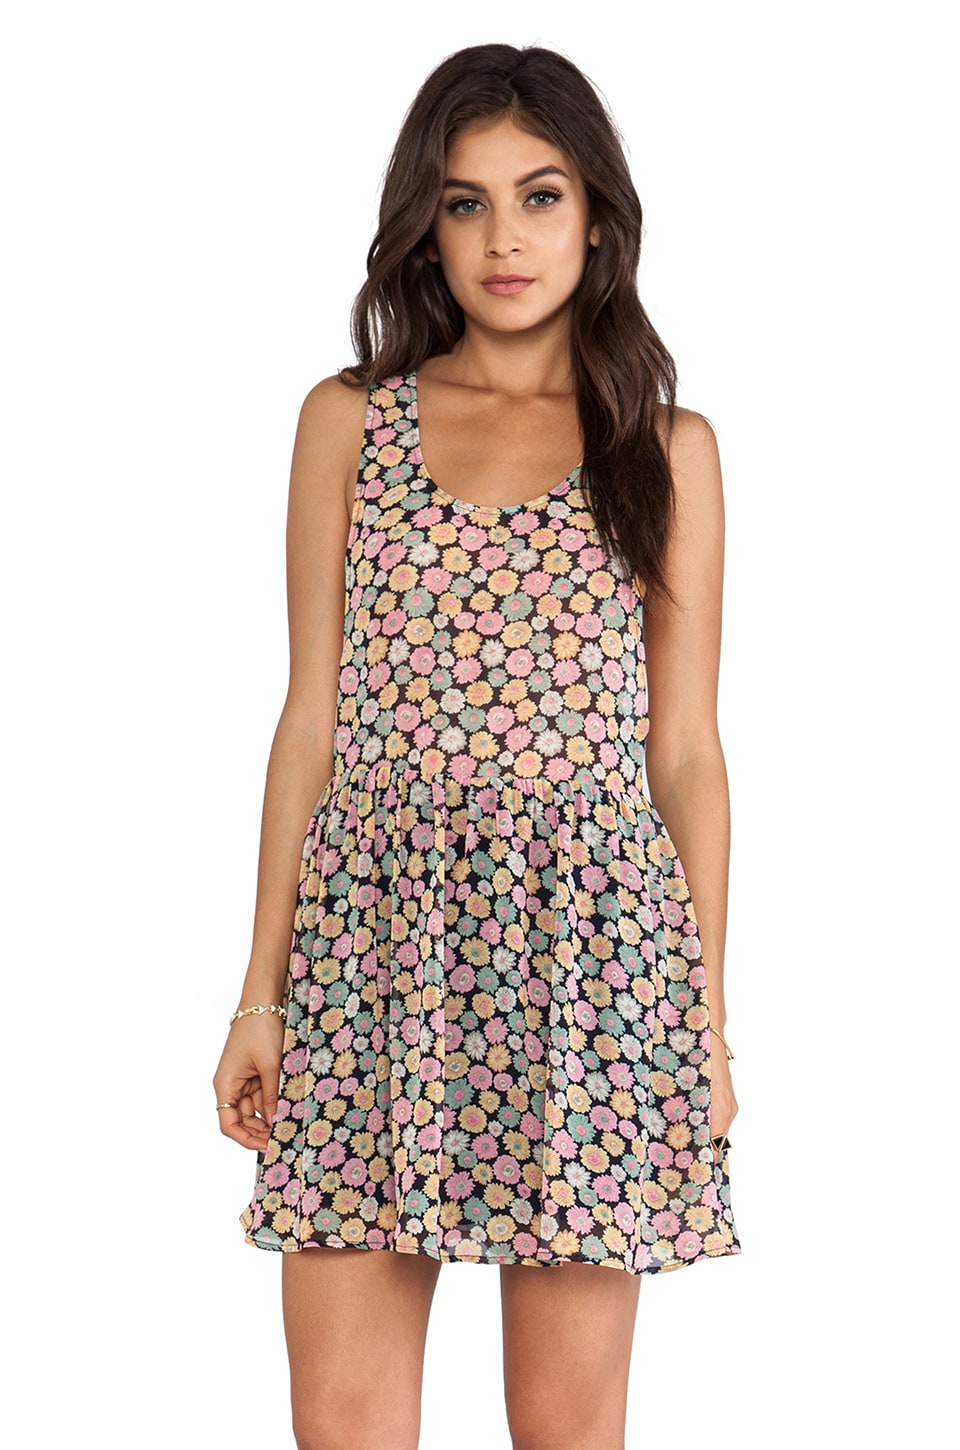 Lucca Couture Mini Tank Dress in Navy Daisies